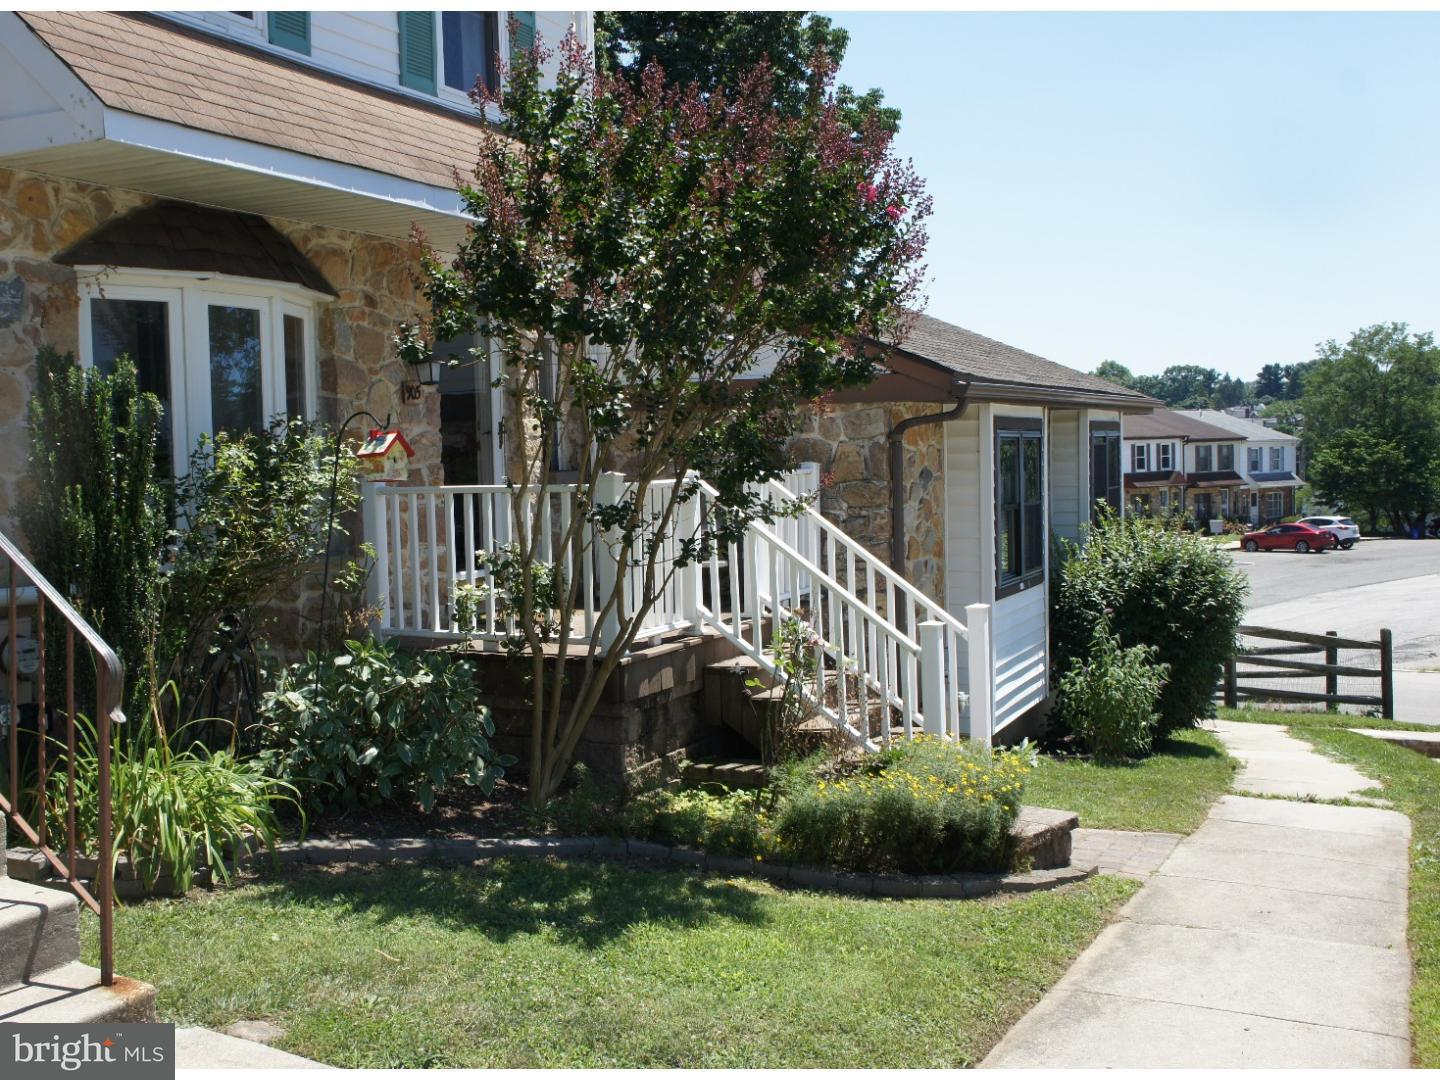 905 SAINT JOSEPH DR, UPPER DARBY - Listed at $185,000, UPPER DARBY